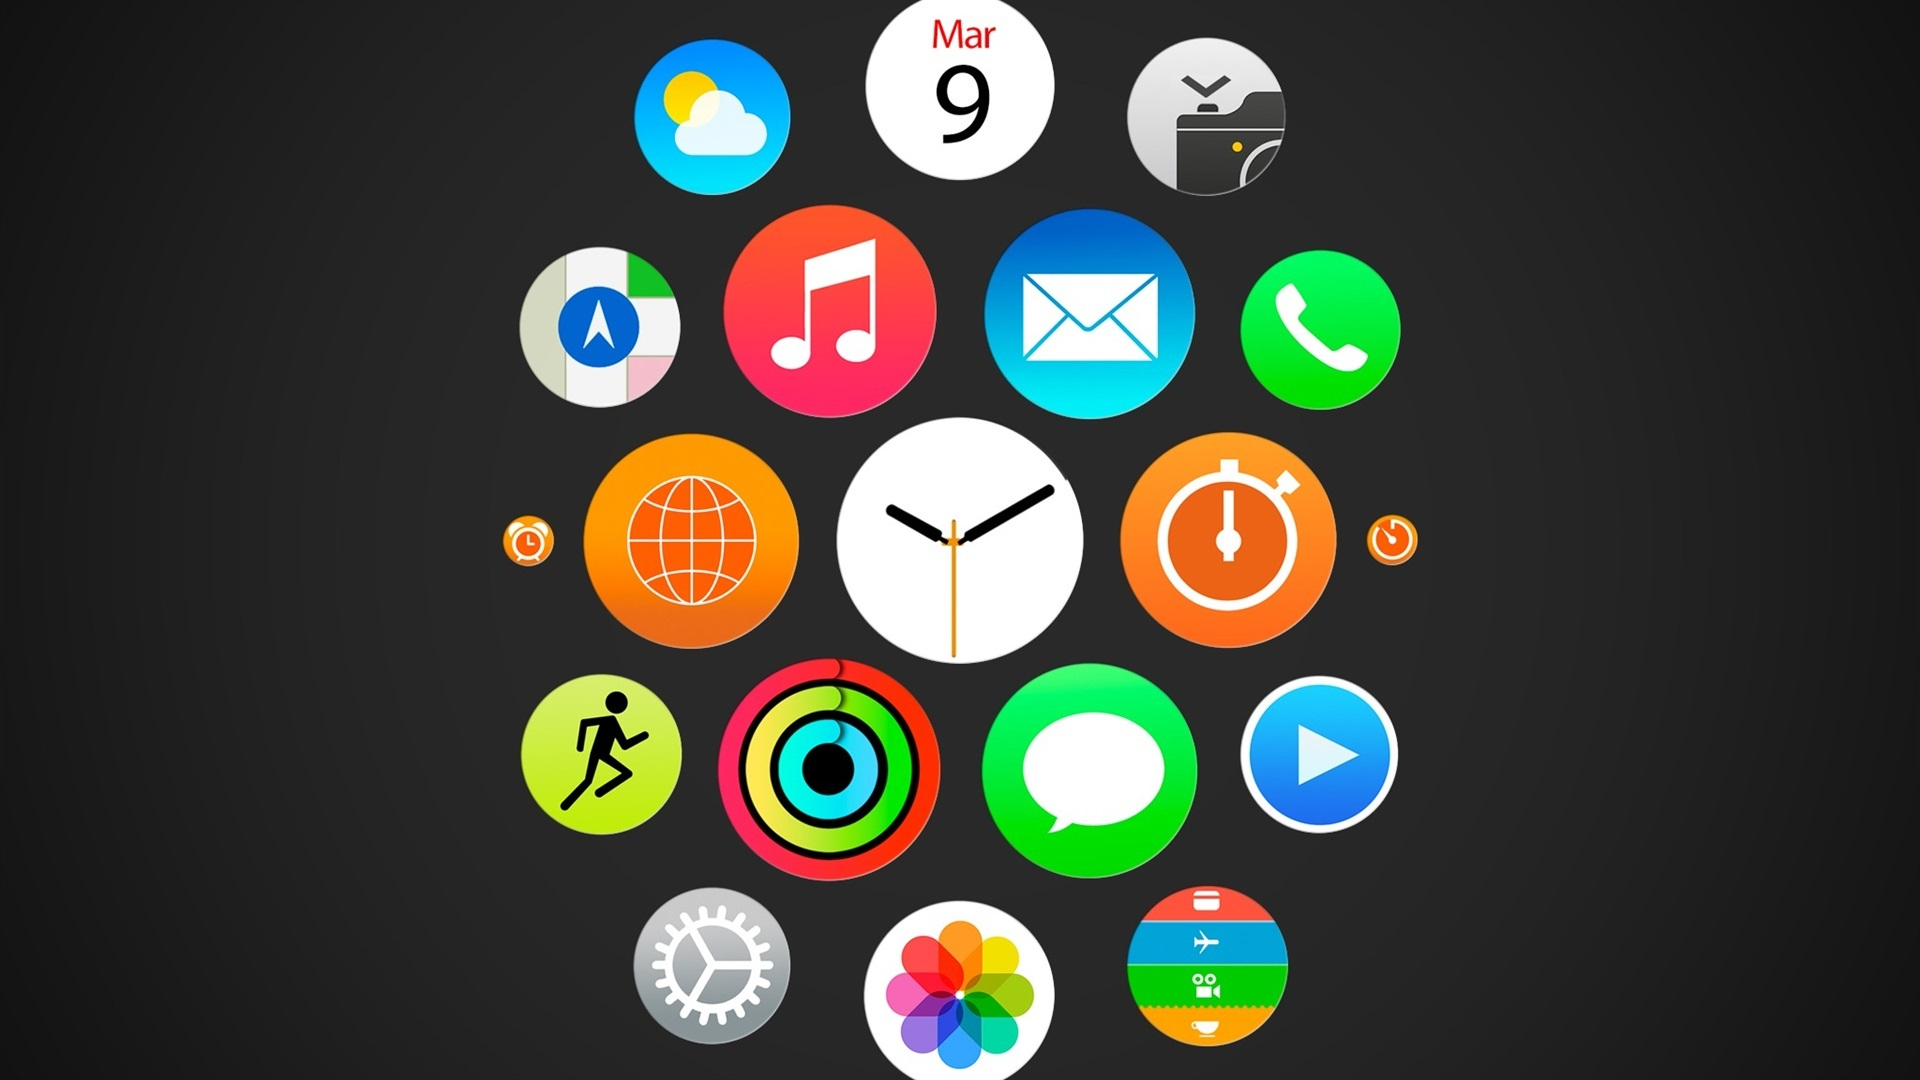 Home Screen Cute Wallpapers For Girls Apple Watch Iwatch Menu Ios Icons Wallpaper Brands And